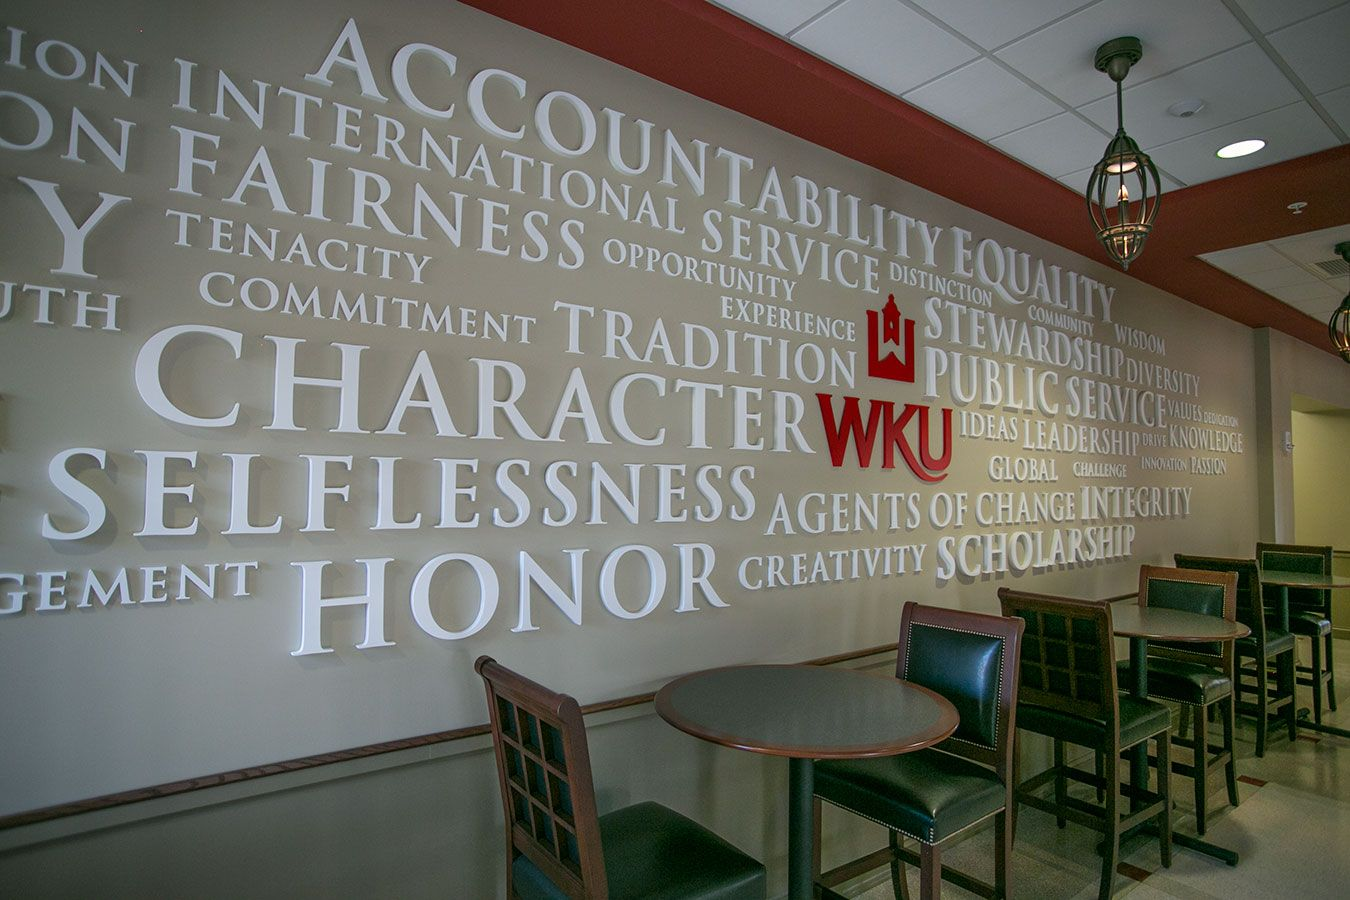 Wku Honors College And International Center Office Design Western Kentucky University Design